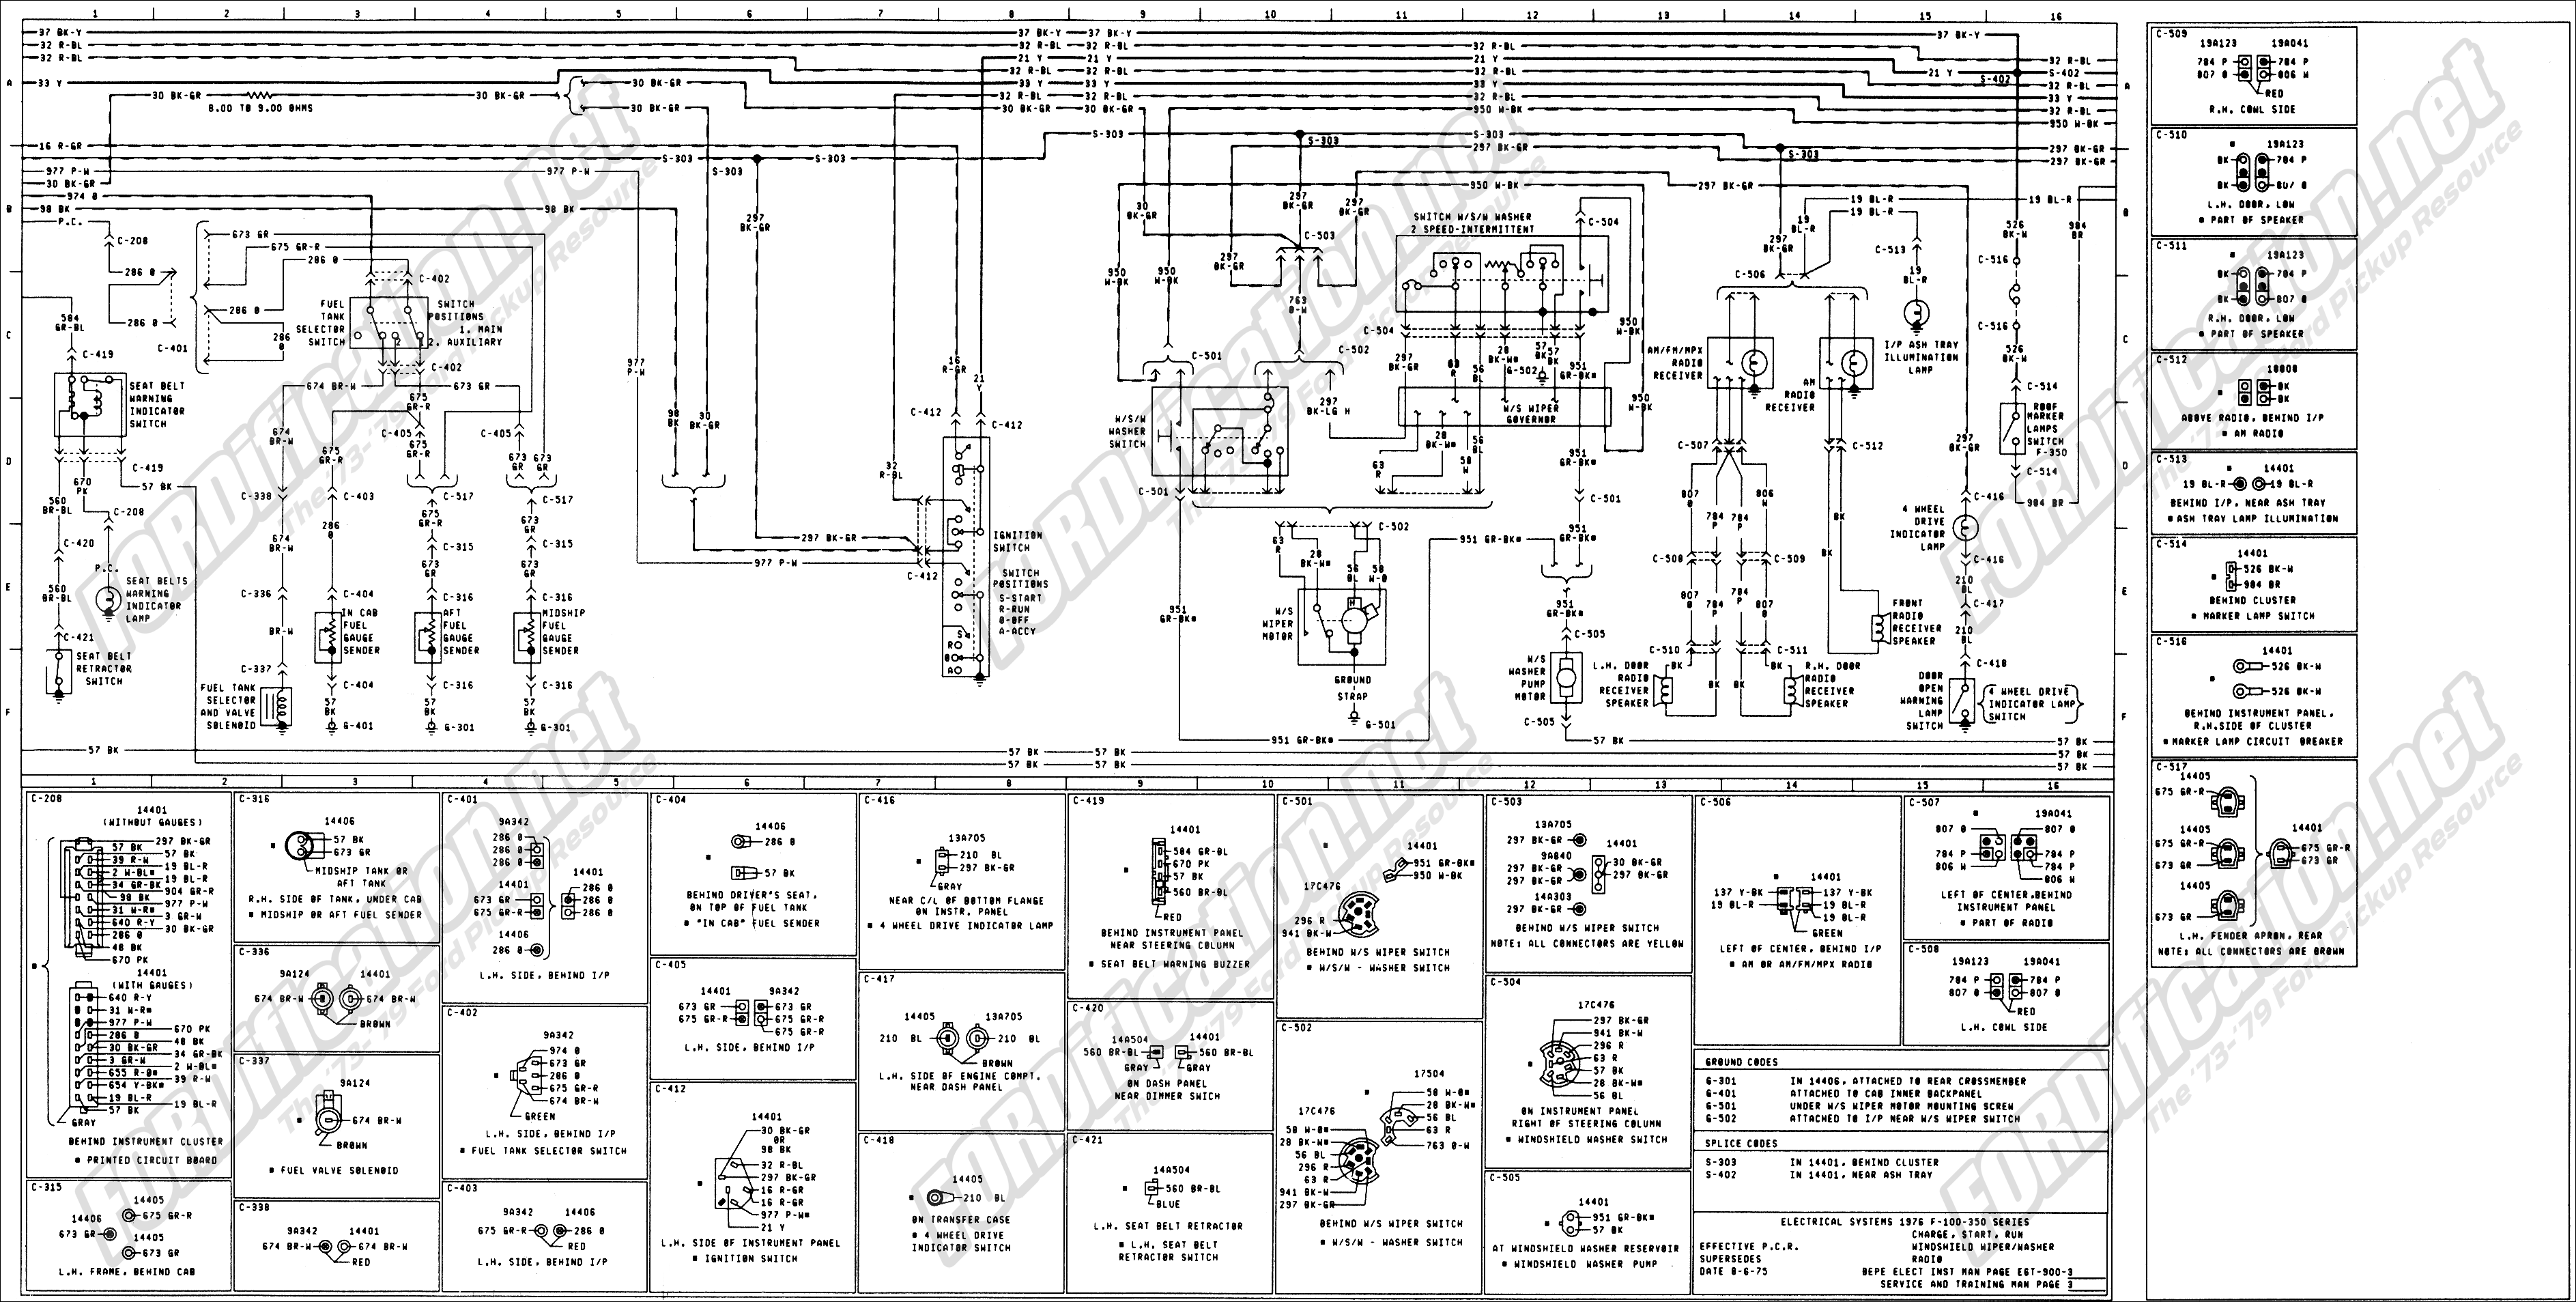 wiring_76master_3of9 1973 ford f250 wiring diagram ford f 150 starter wiring diagram 1995 ford l9000 wiring schematics at gsmx.co